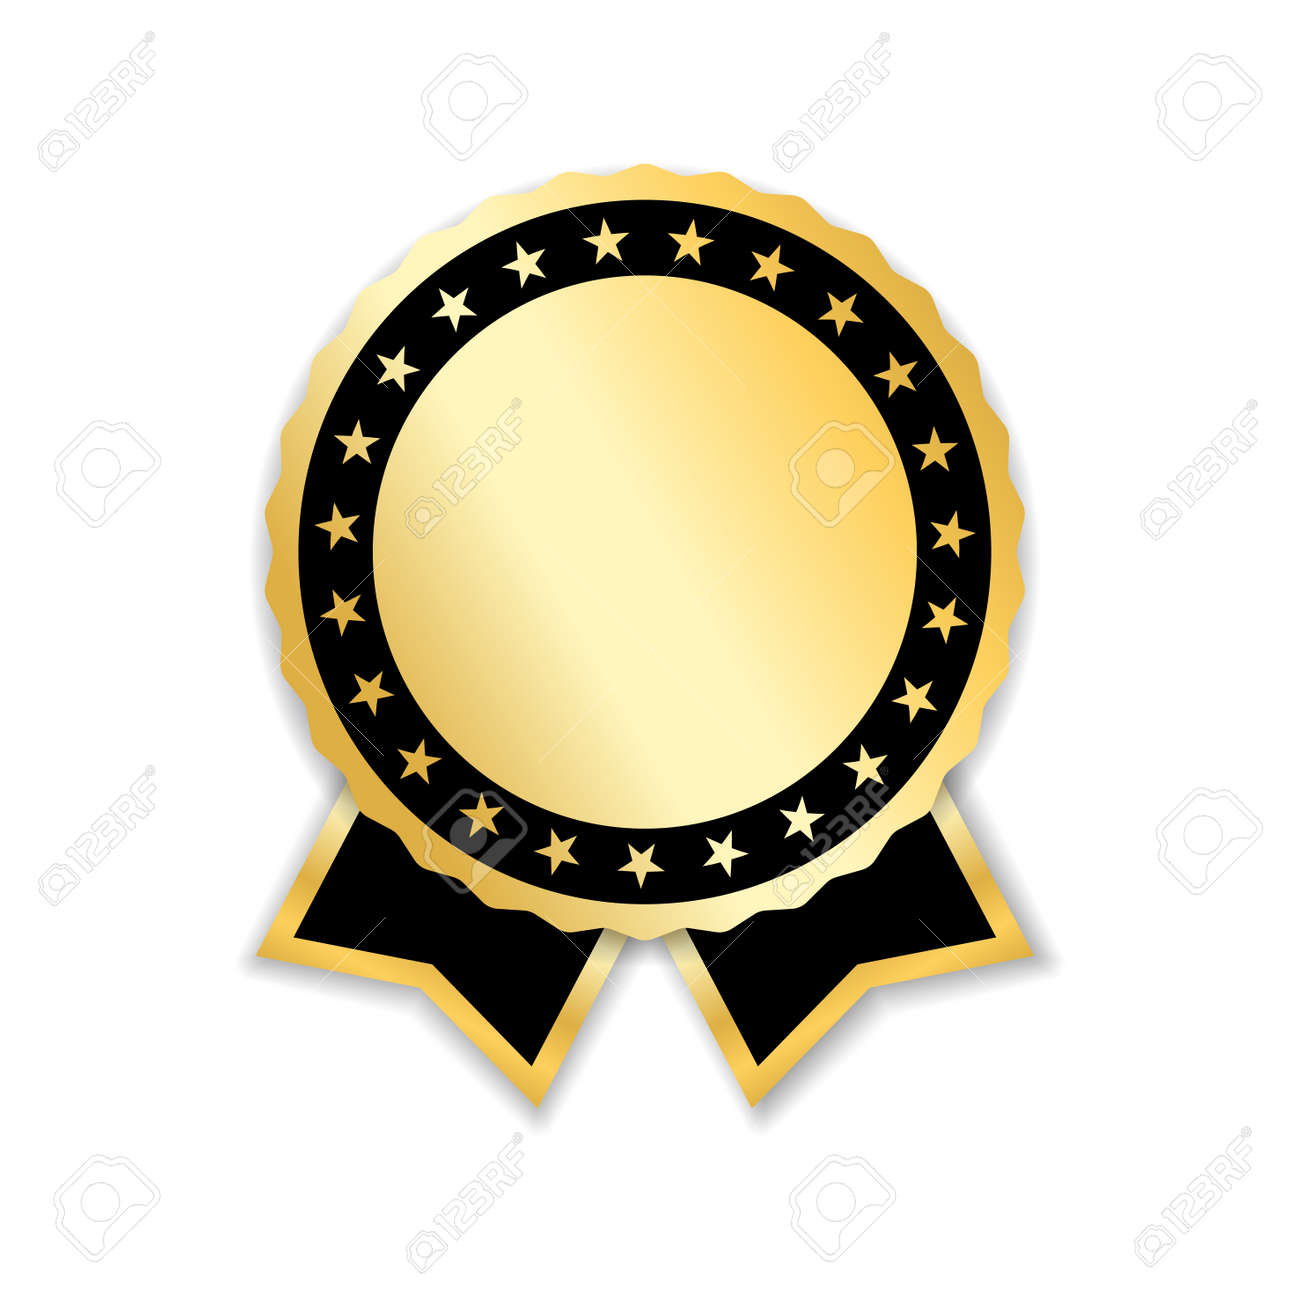 Award Ribbon Isolated Gold Design Medal Label Badge Certificate